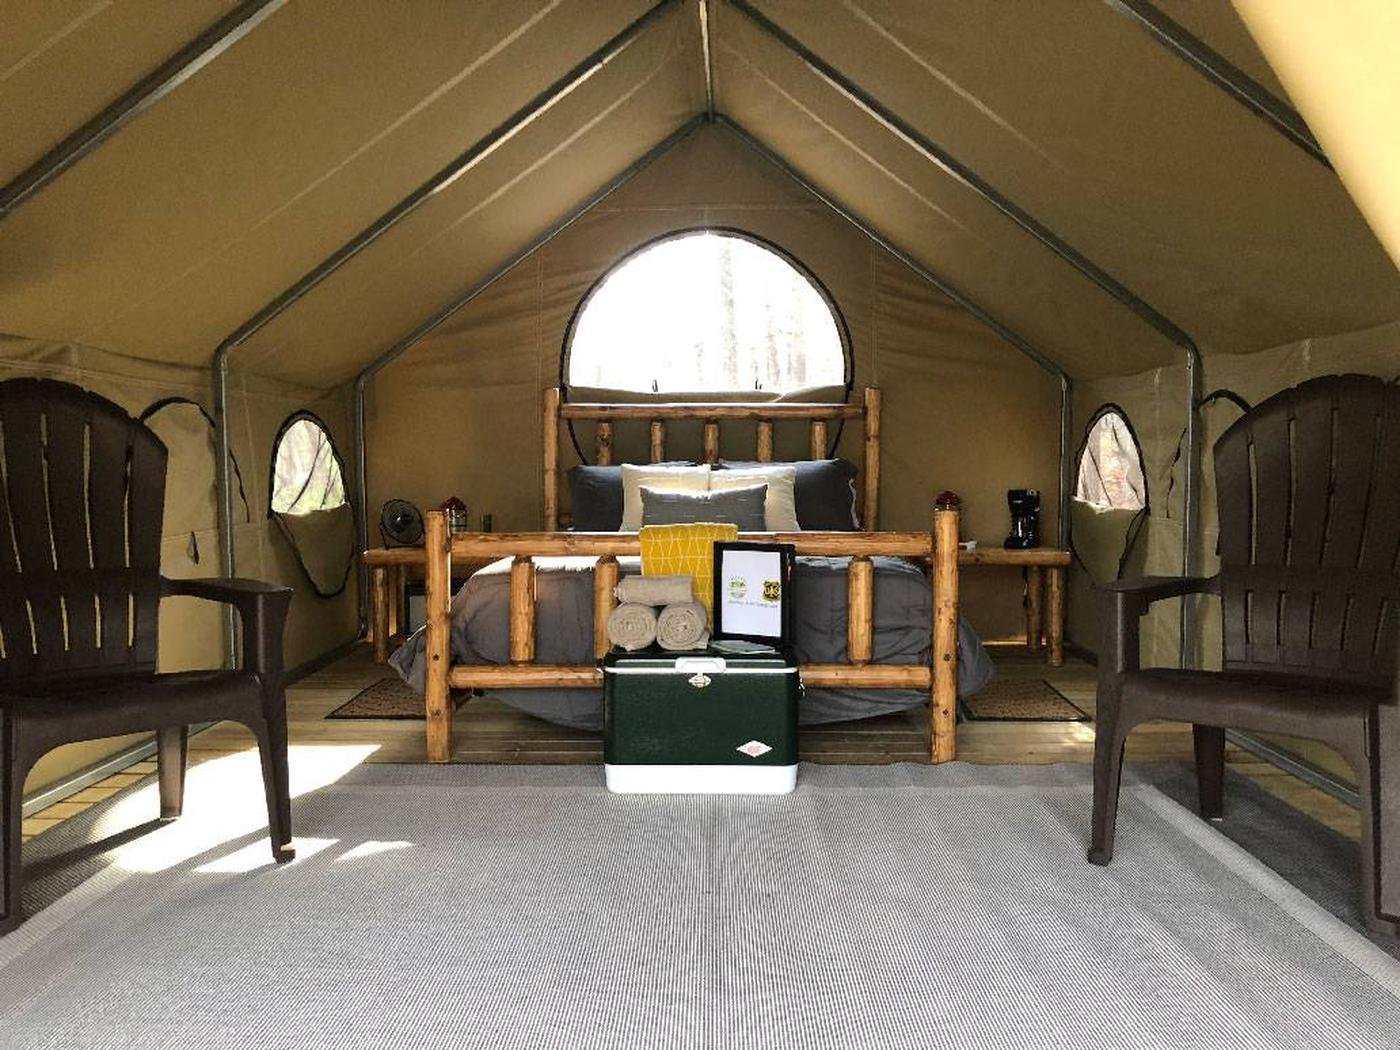 Lake Powhatan Glamping TentGlamping Tents - new for 2019! Glamping is all about finding the perfect relationship between nature and comfort. These Glamping tents provide all you'll need, plus some.